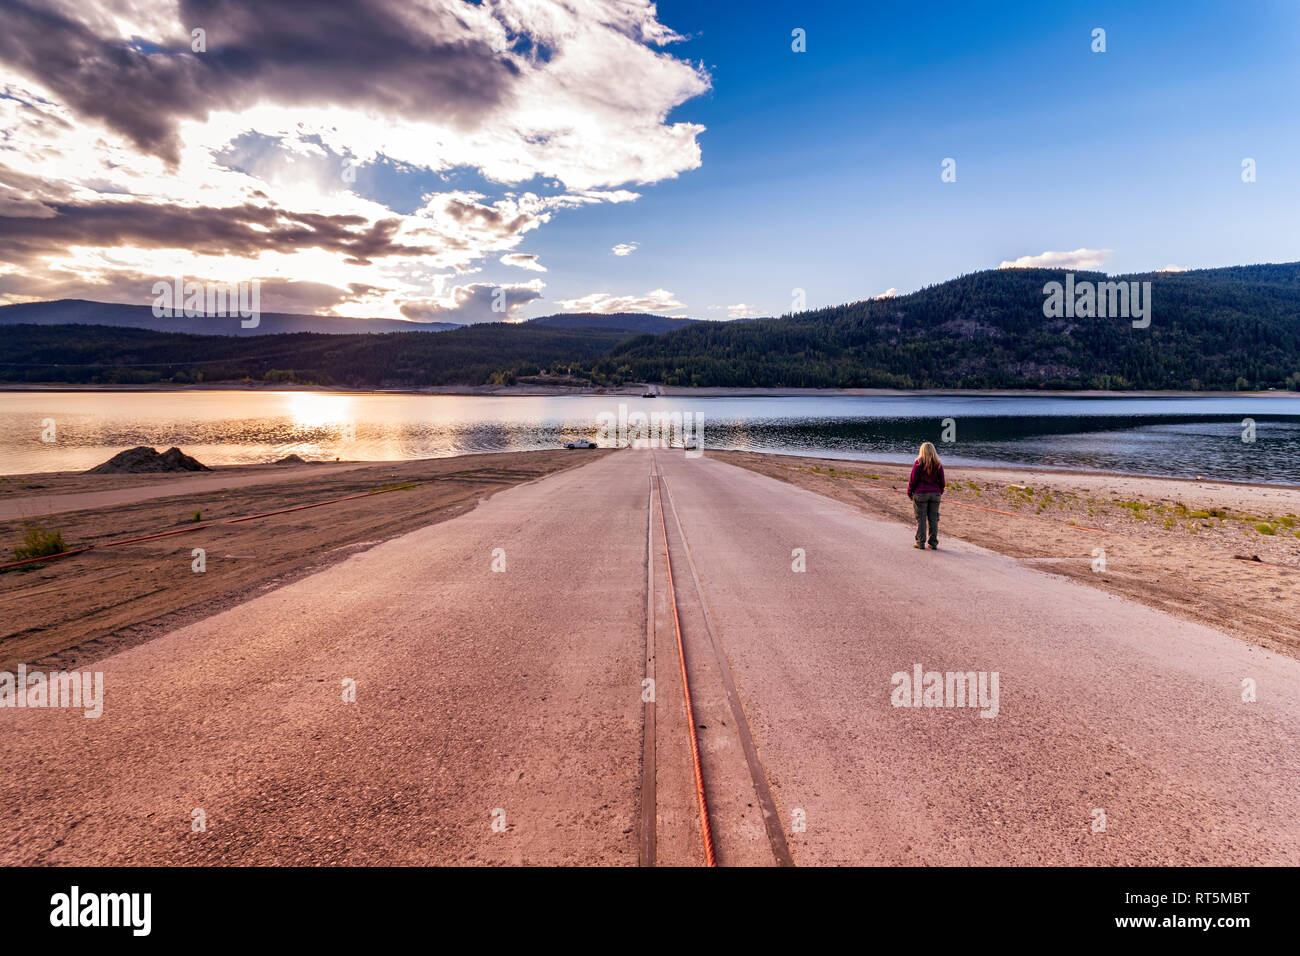 Canada, British Columbia, Central Kootenay, Lower Arrow Lake, waiting for the Fauquier-Needles Ferry crossing - Stock Image